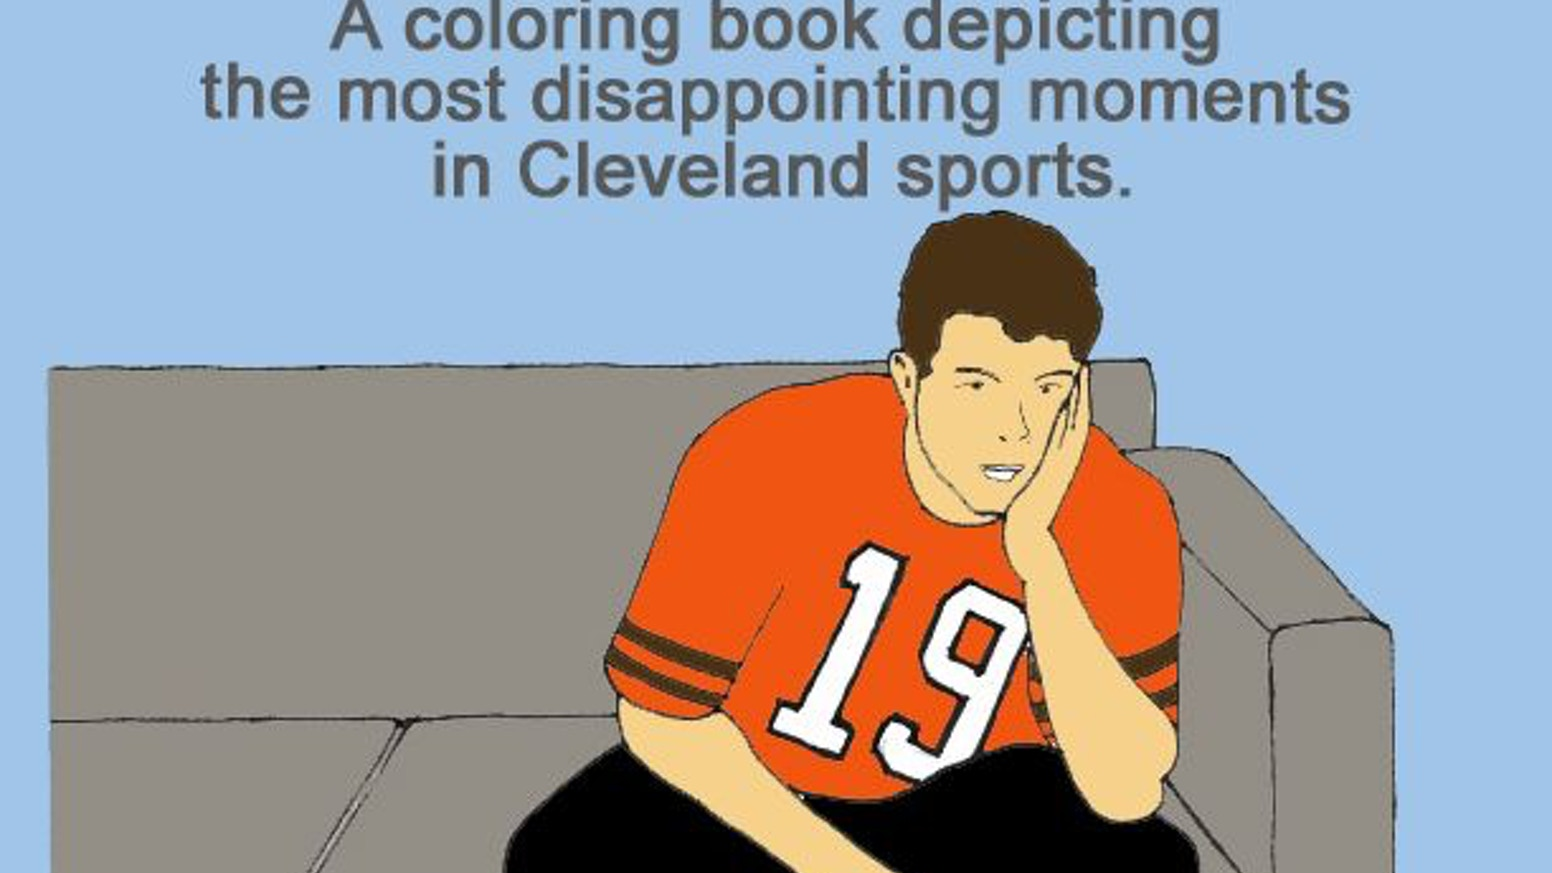 A humorous & educational coloring book for the whole family, depicting famous disappointing moments from Cleveland professional sports.